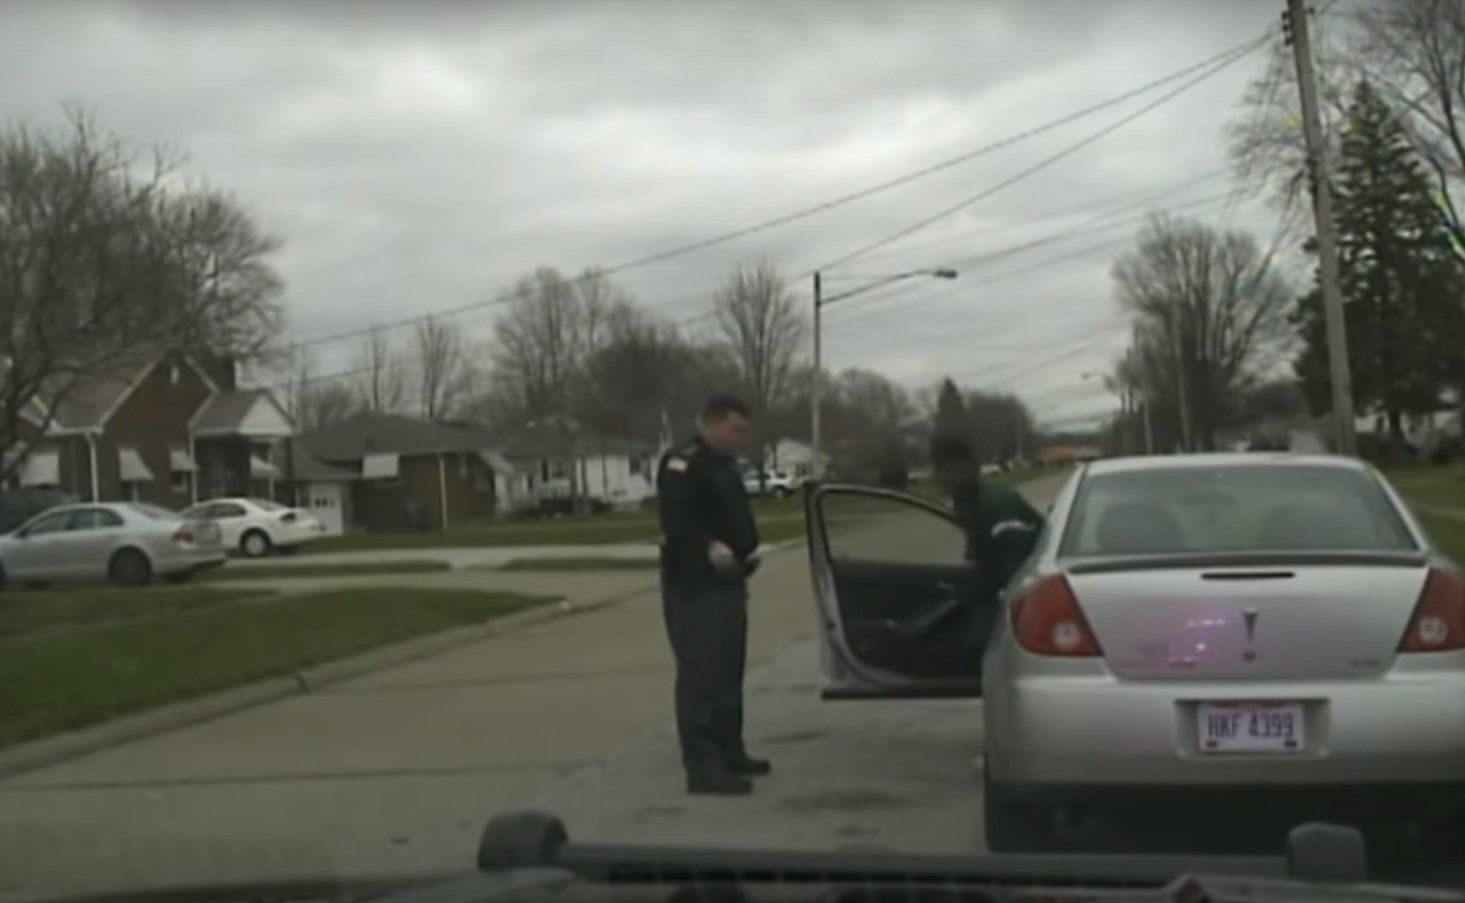 An image from the video shows the traffic stop in Lorain, Ohio.